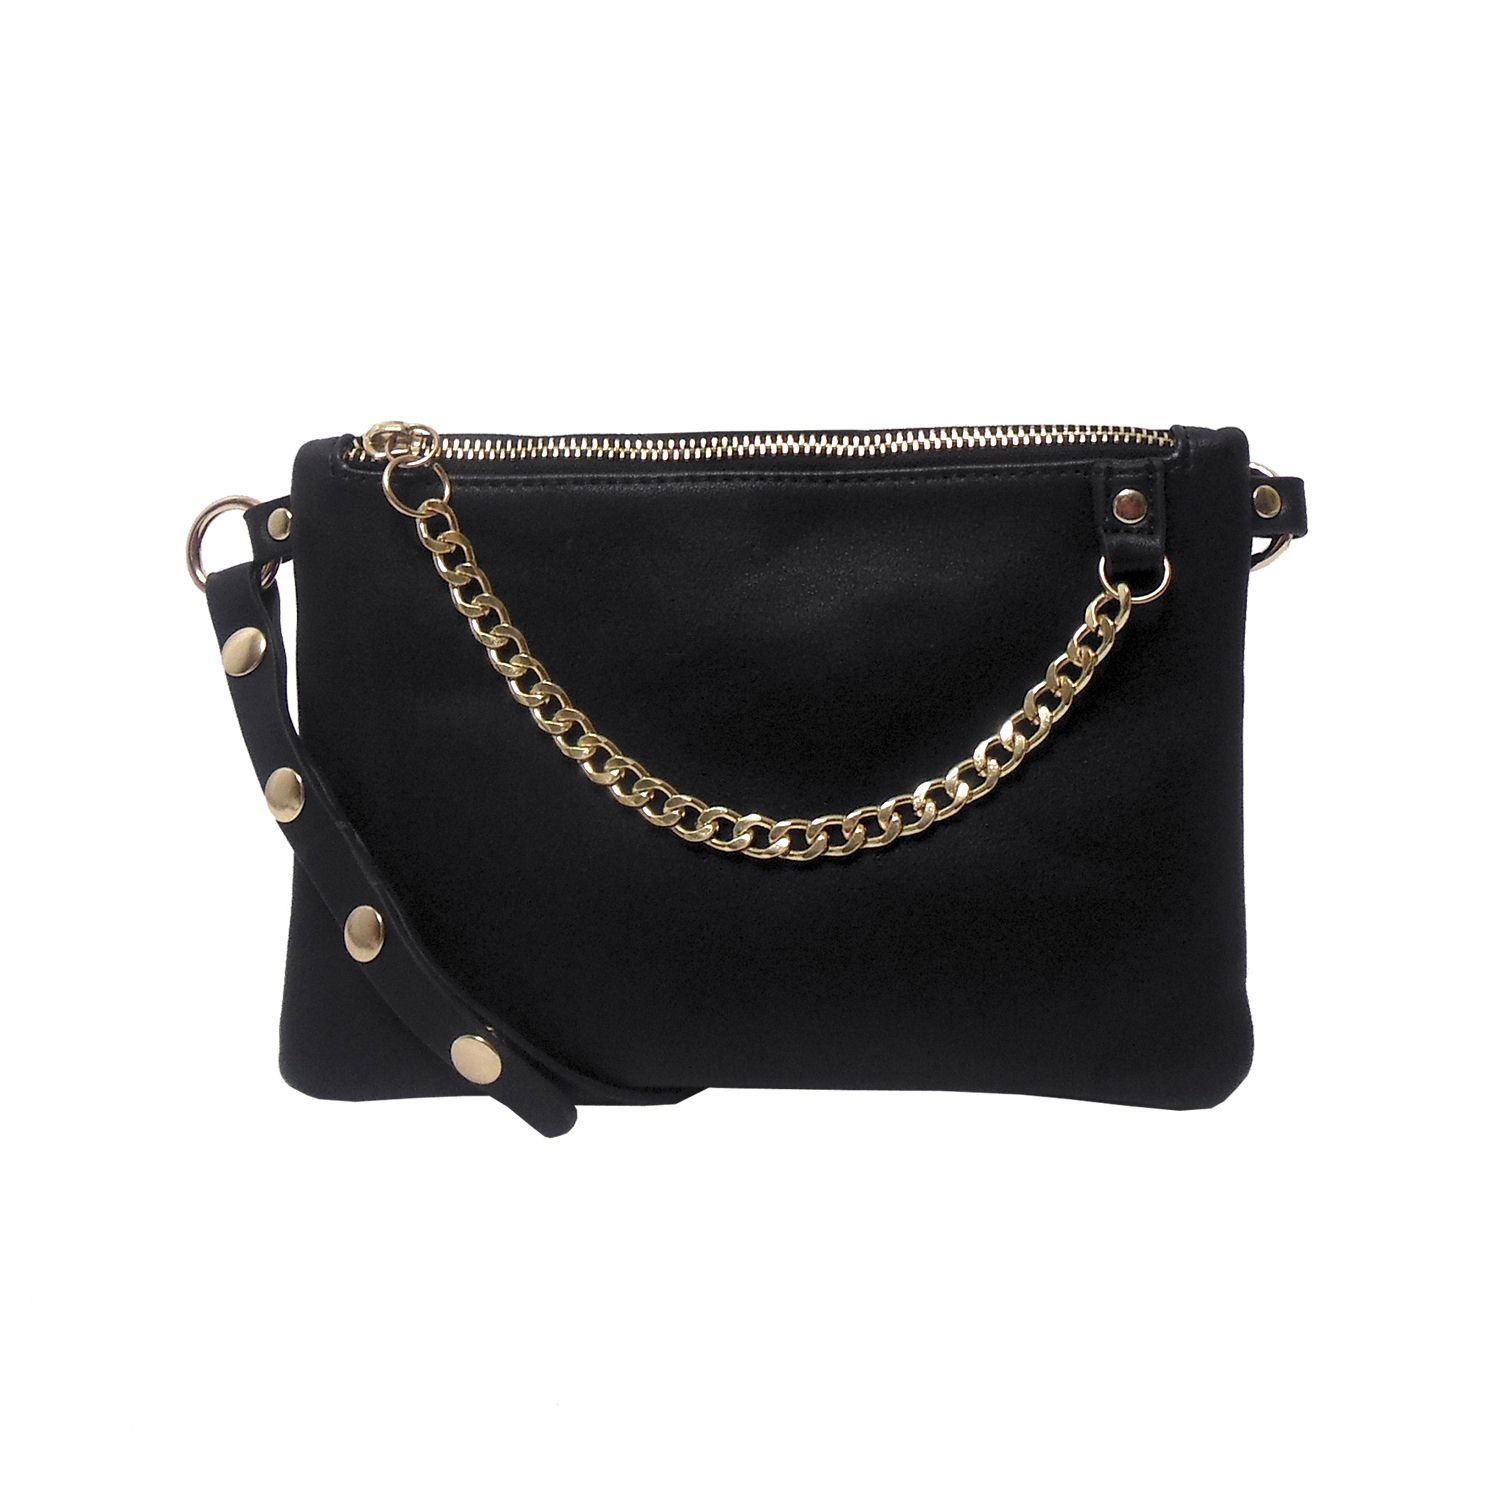 Women's Small Flat Fashion Fanny Pack with Chain - Fits up to 34 inch Waist